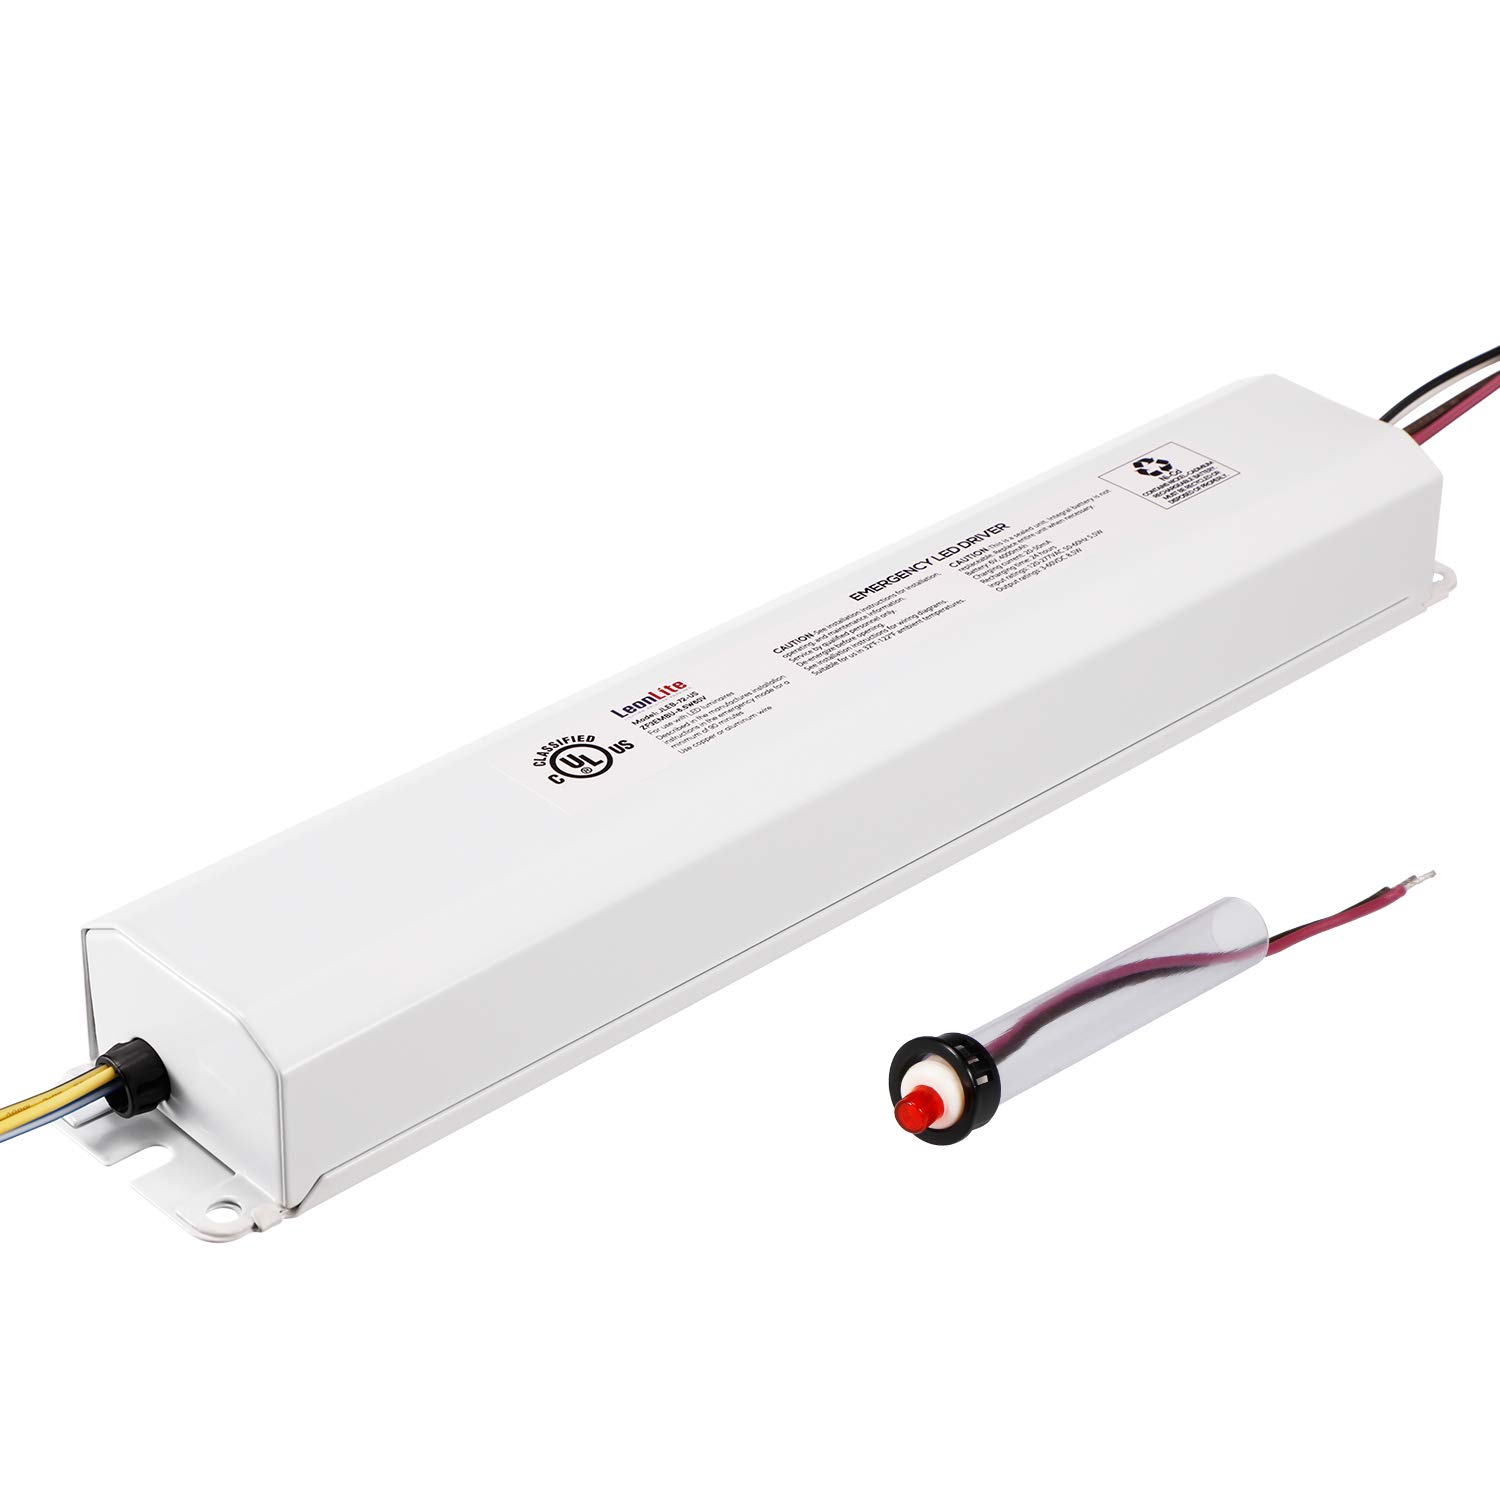 LEONLITE 8.5W 3-60VDC Emergency LED Driver, Rechargable UL Listed Backup Battery, Over 90mins Emergency Lighting, for 8-72W LED Luminaires with External Drivers